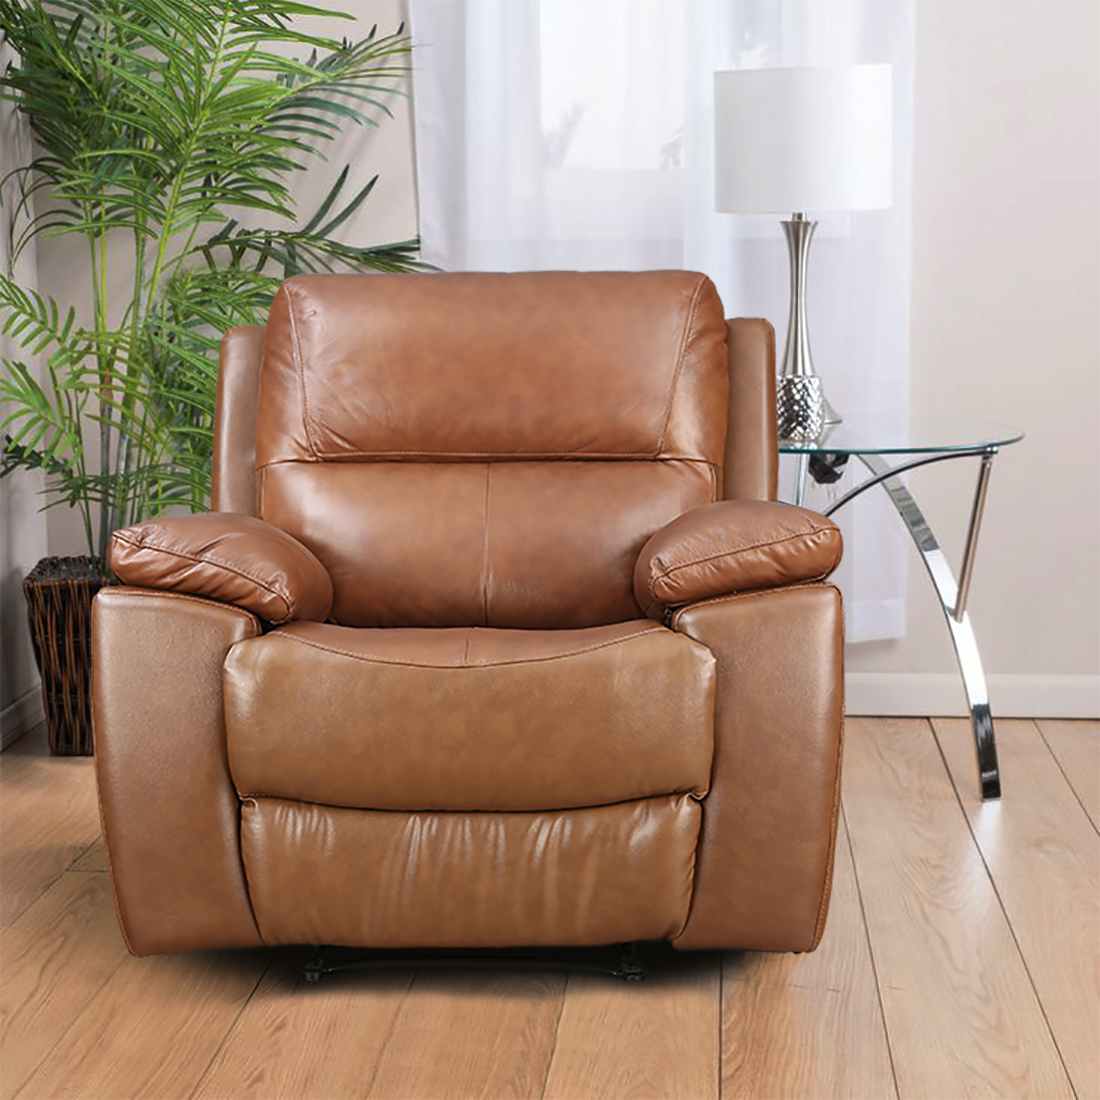 Lionel Half Leather Single Seater Recliner in Brown Colour by HomeTown